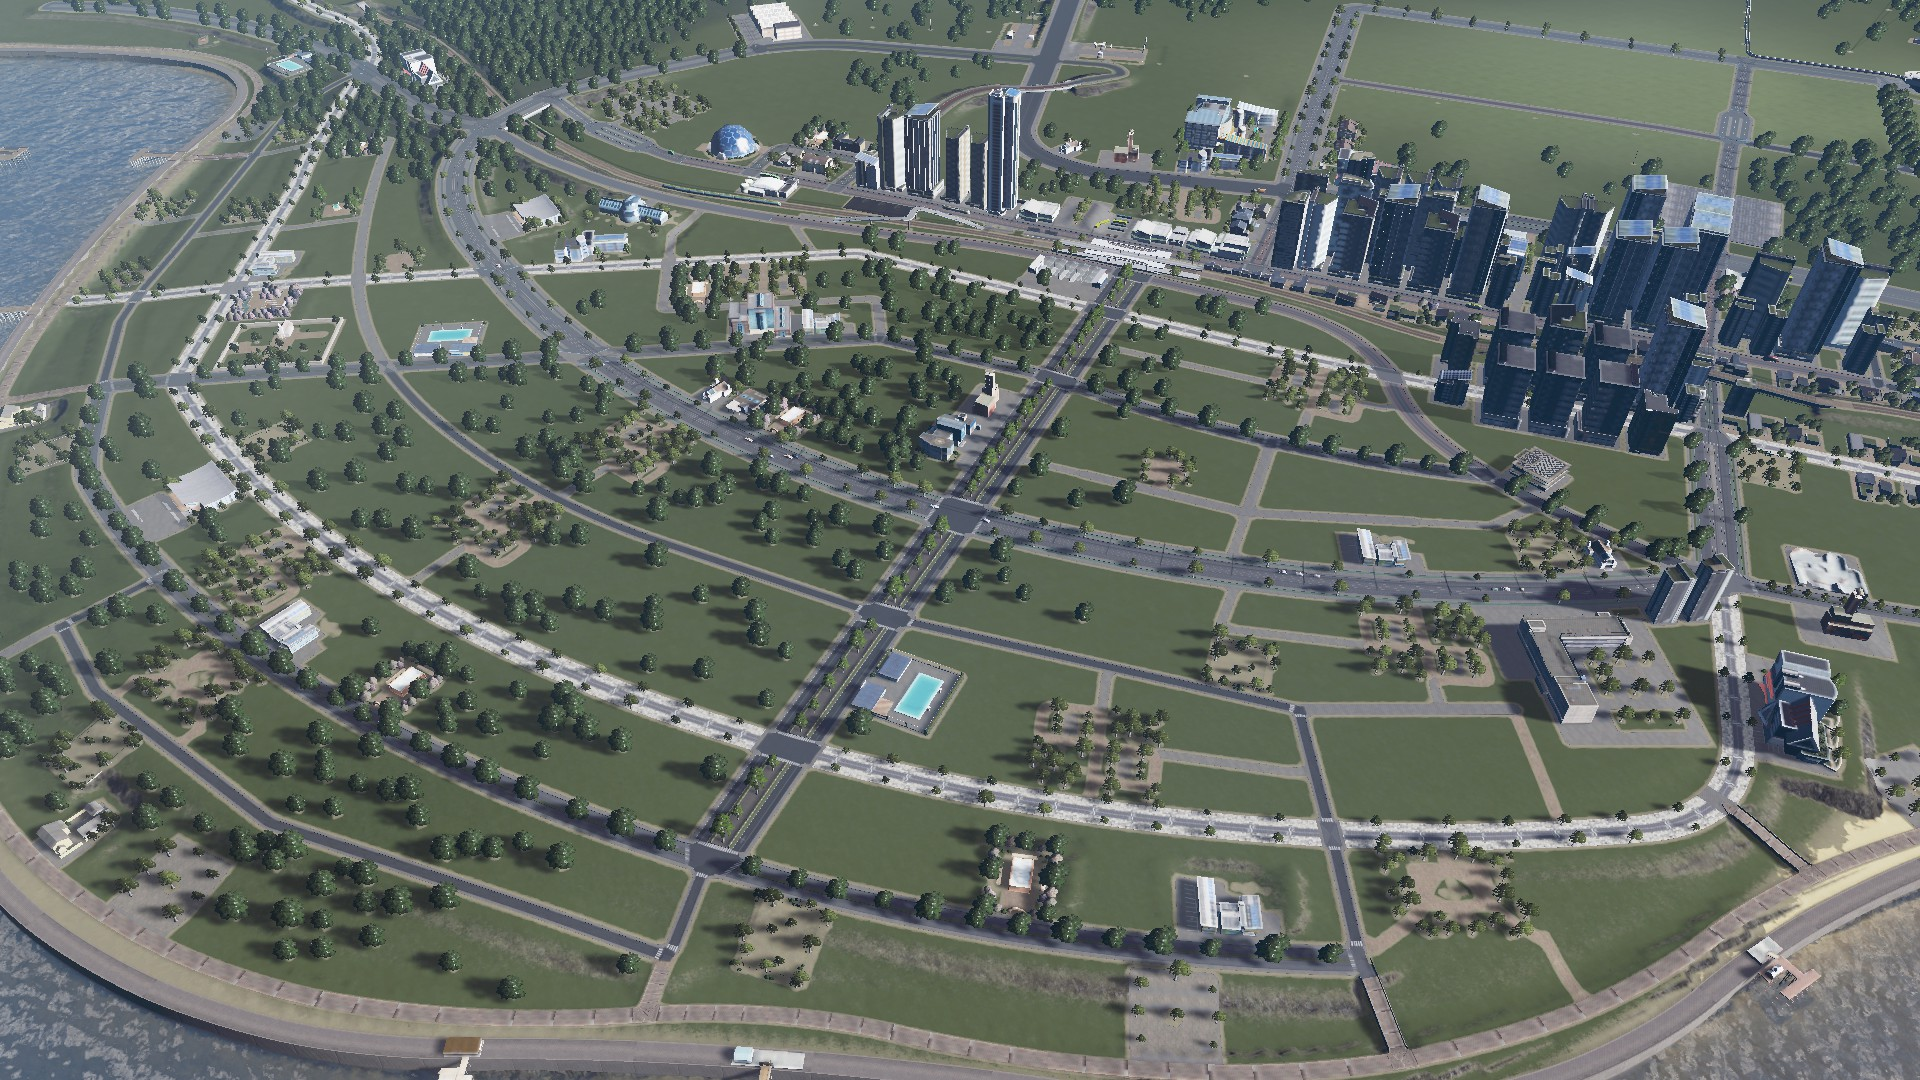 #CitiesSkylines New Expansion Out Next Month: PARKS – Lots and Lots of PARKS